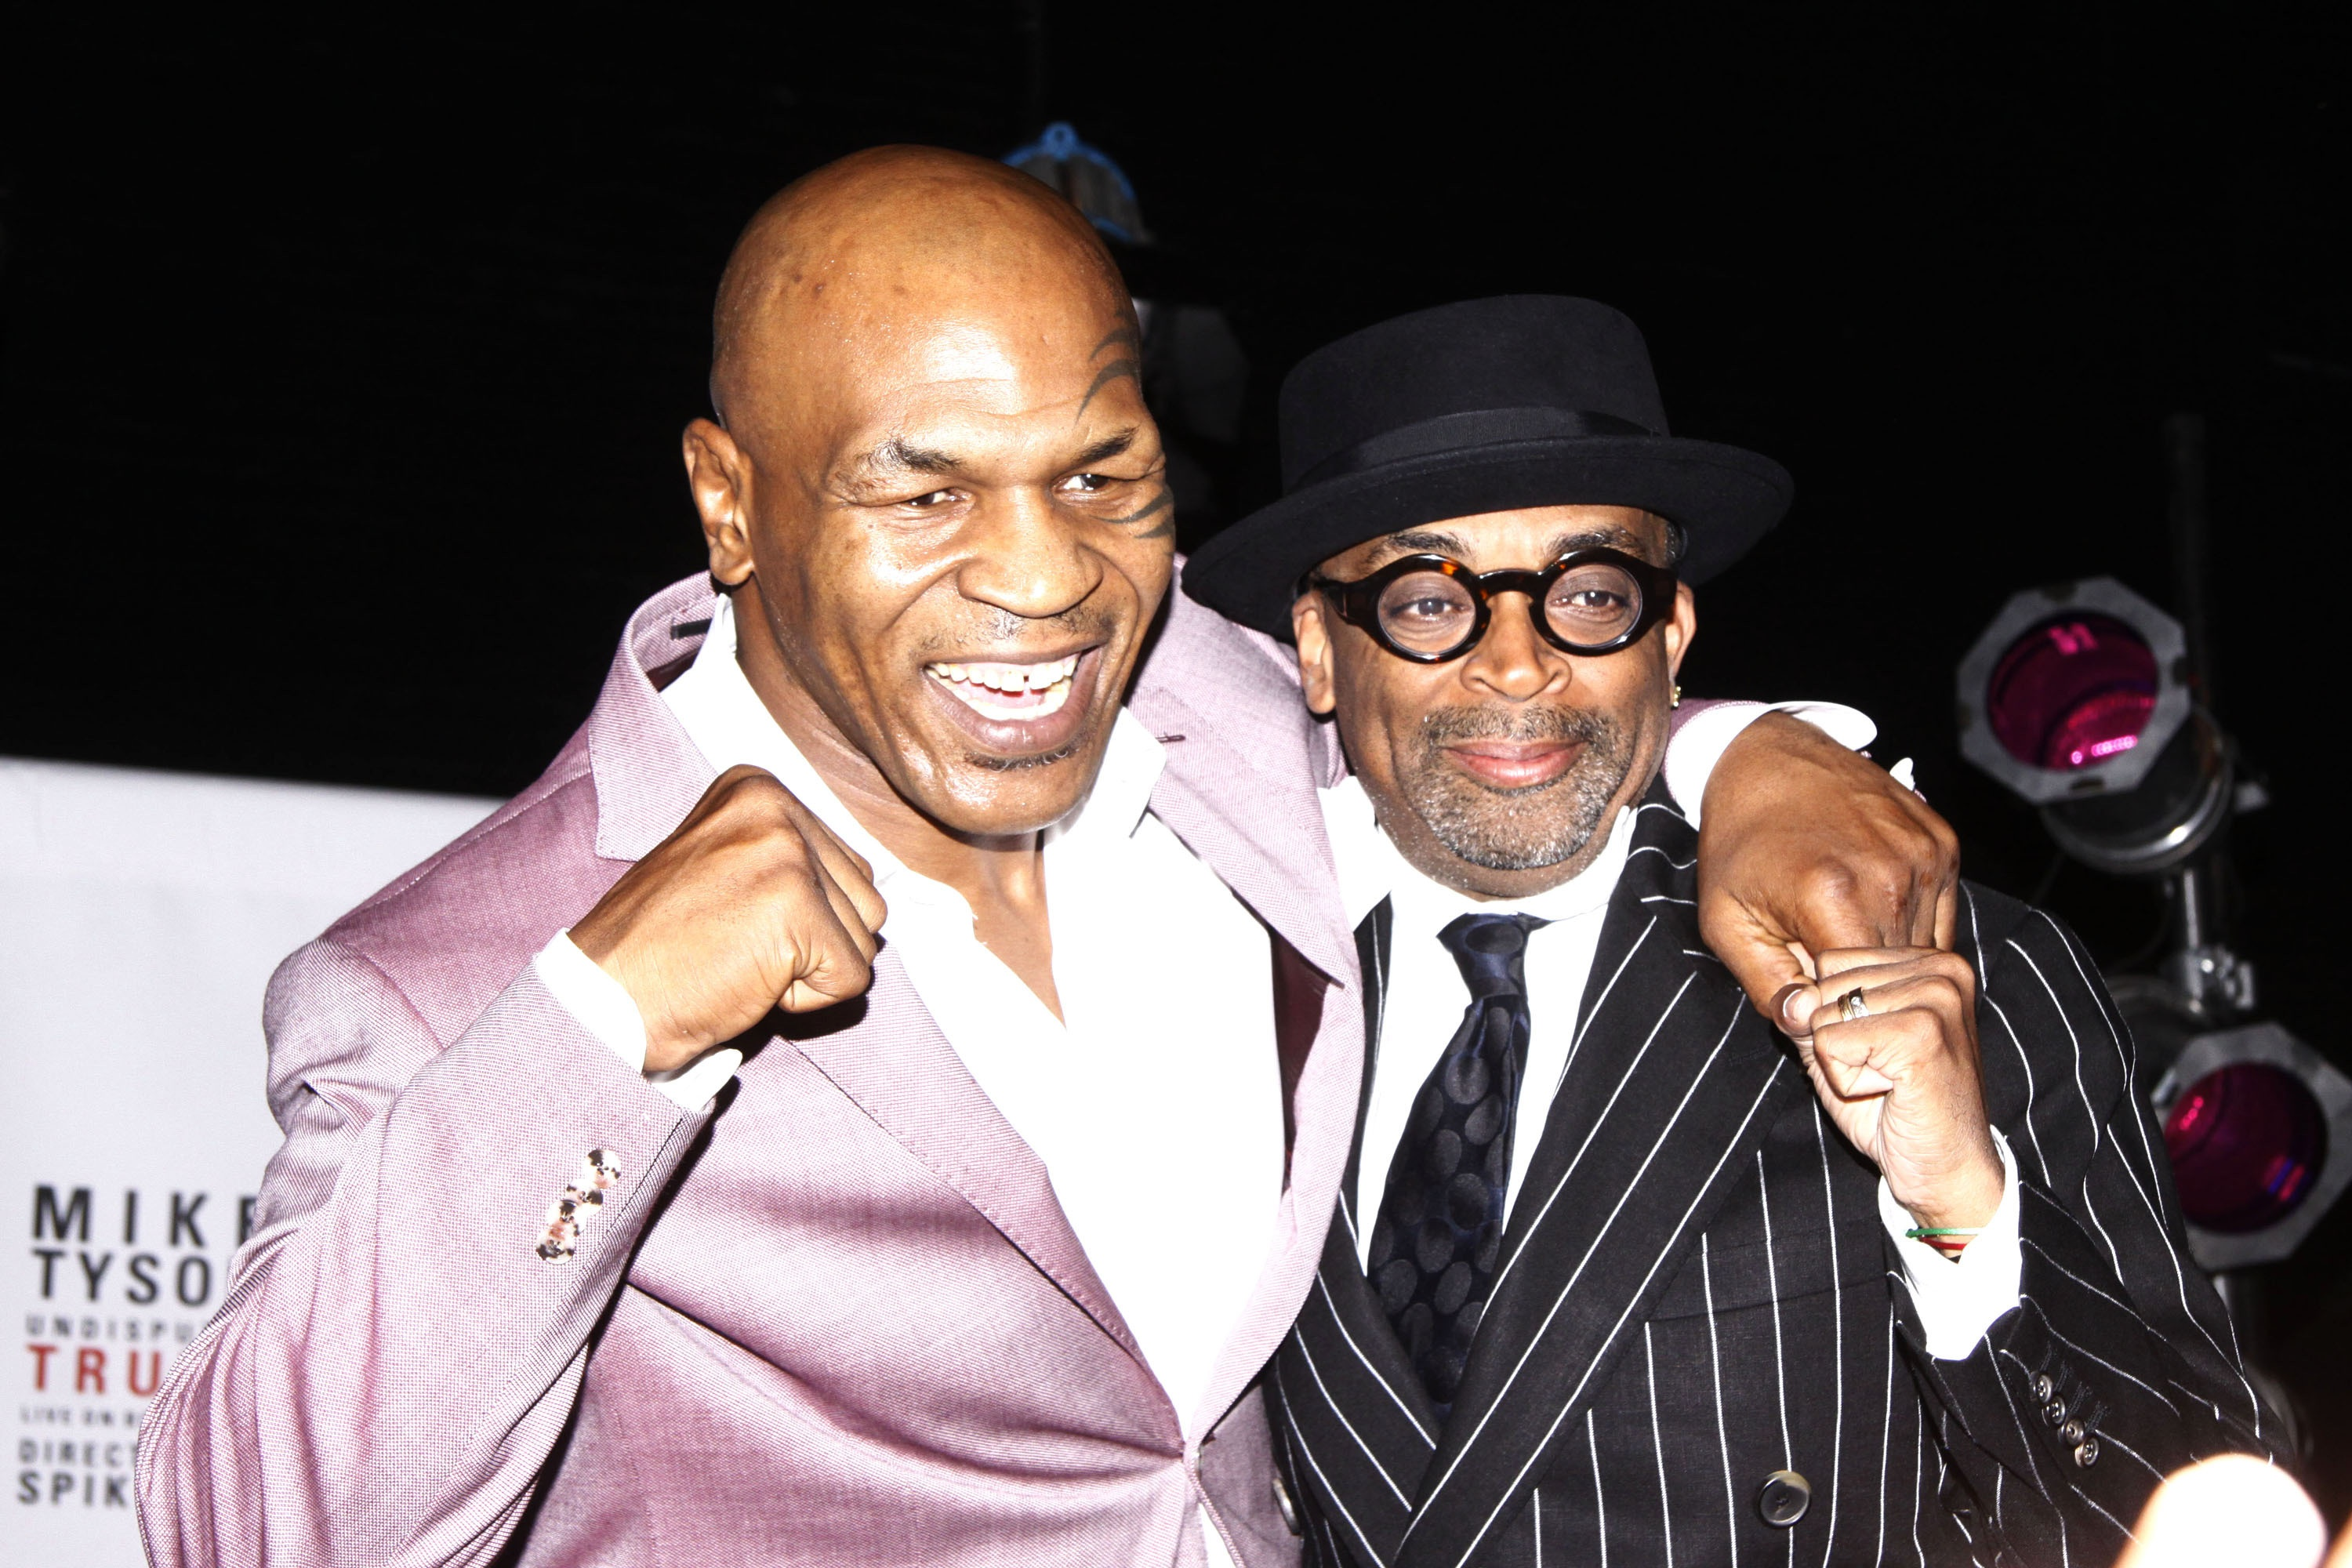 Mike Tyson Spike Lee